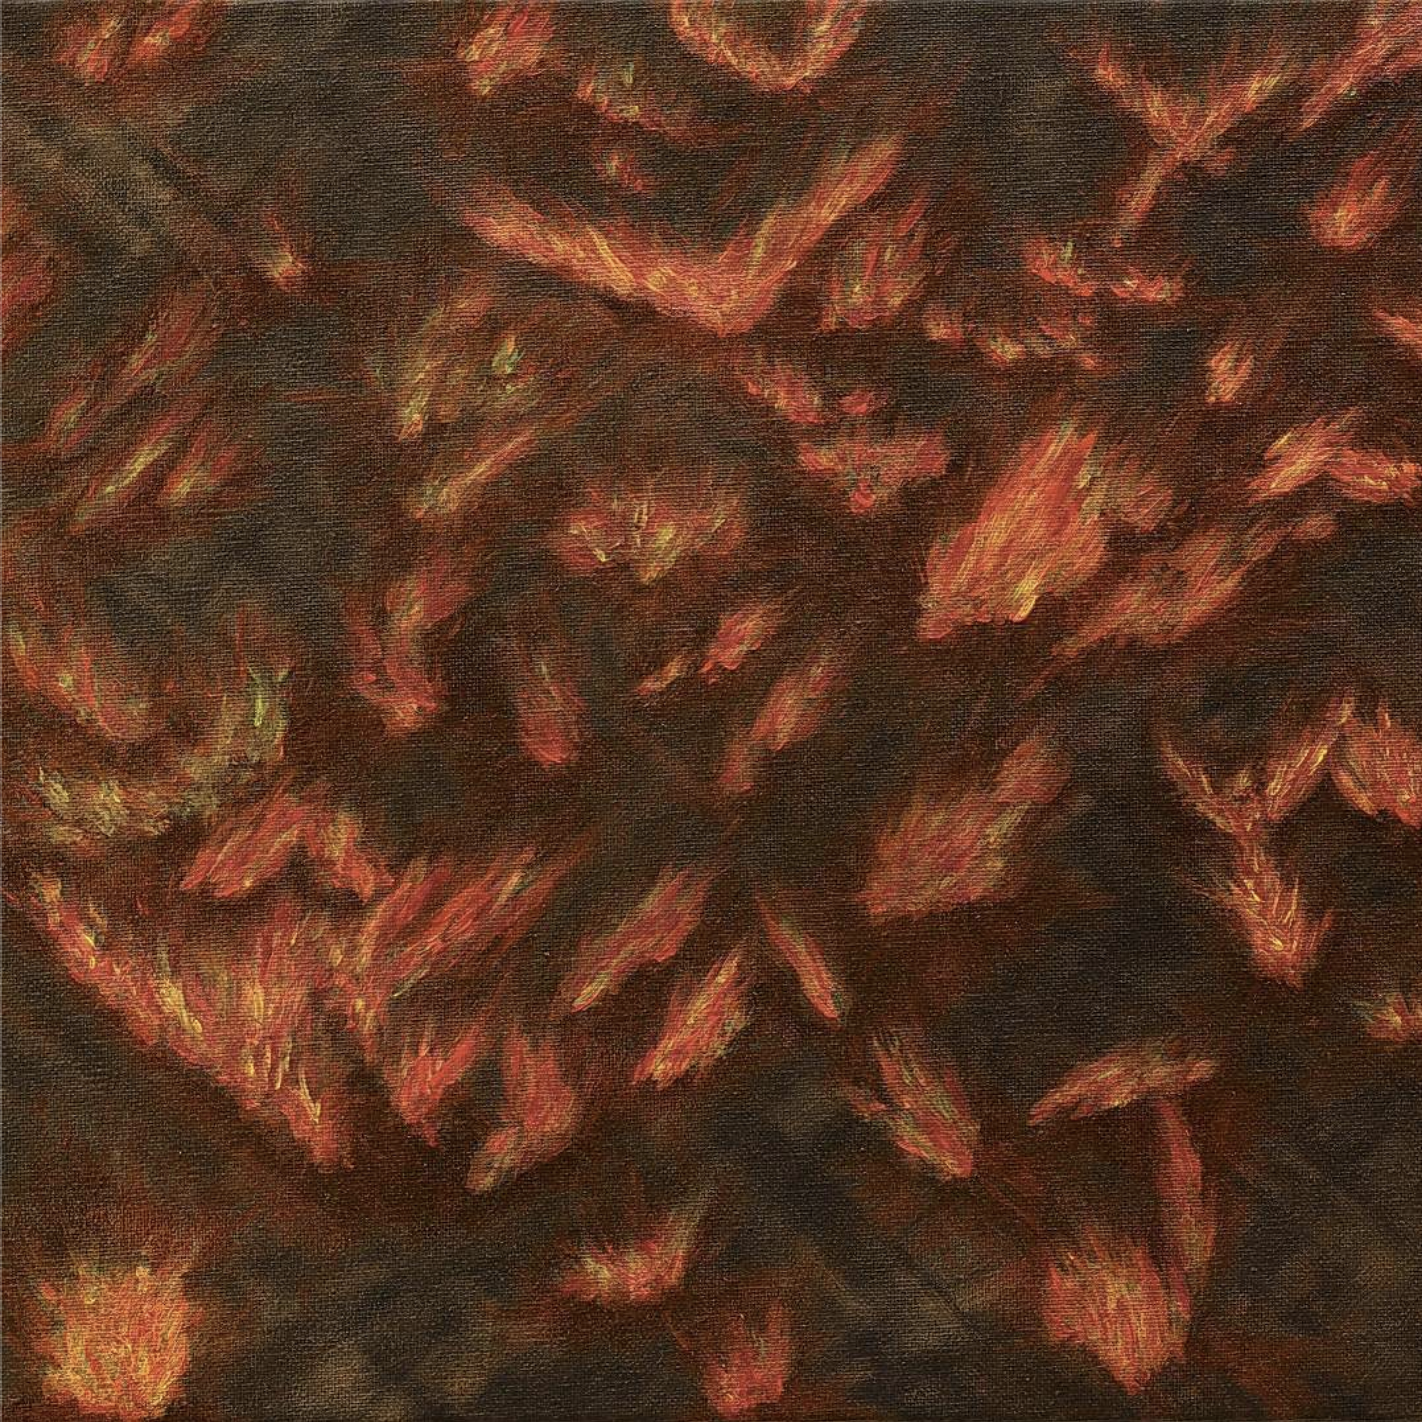 An abstract painting of a wildfire.